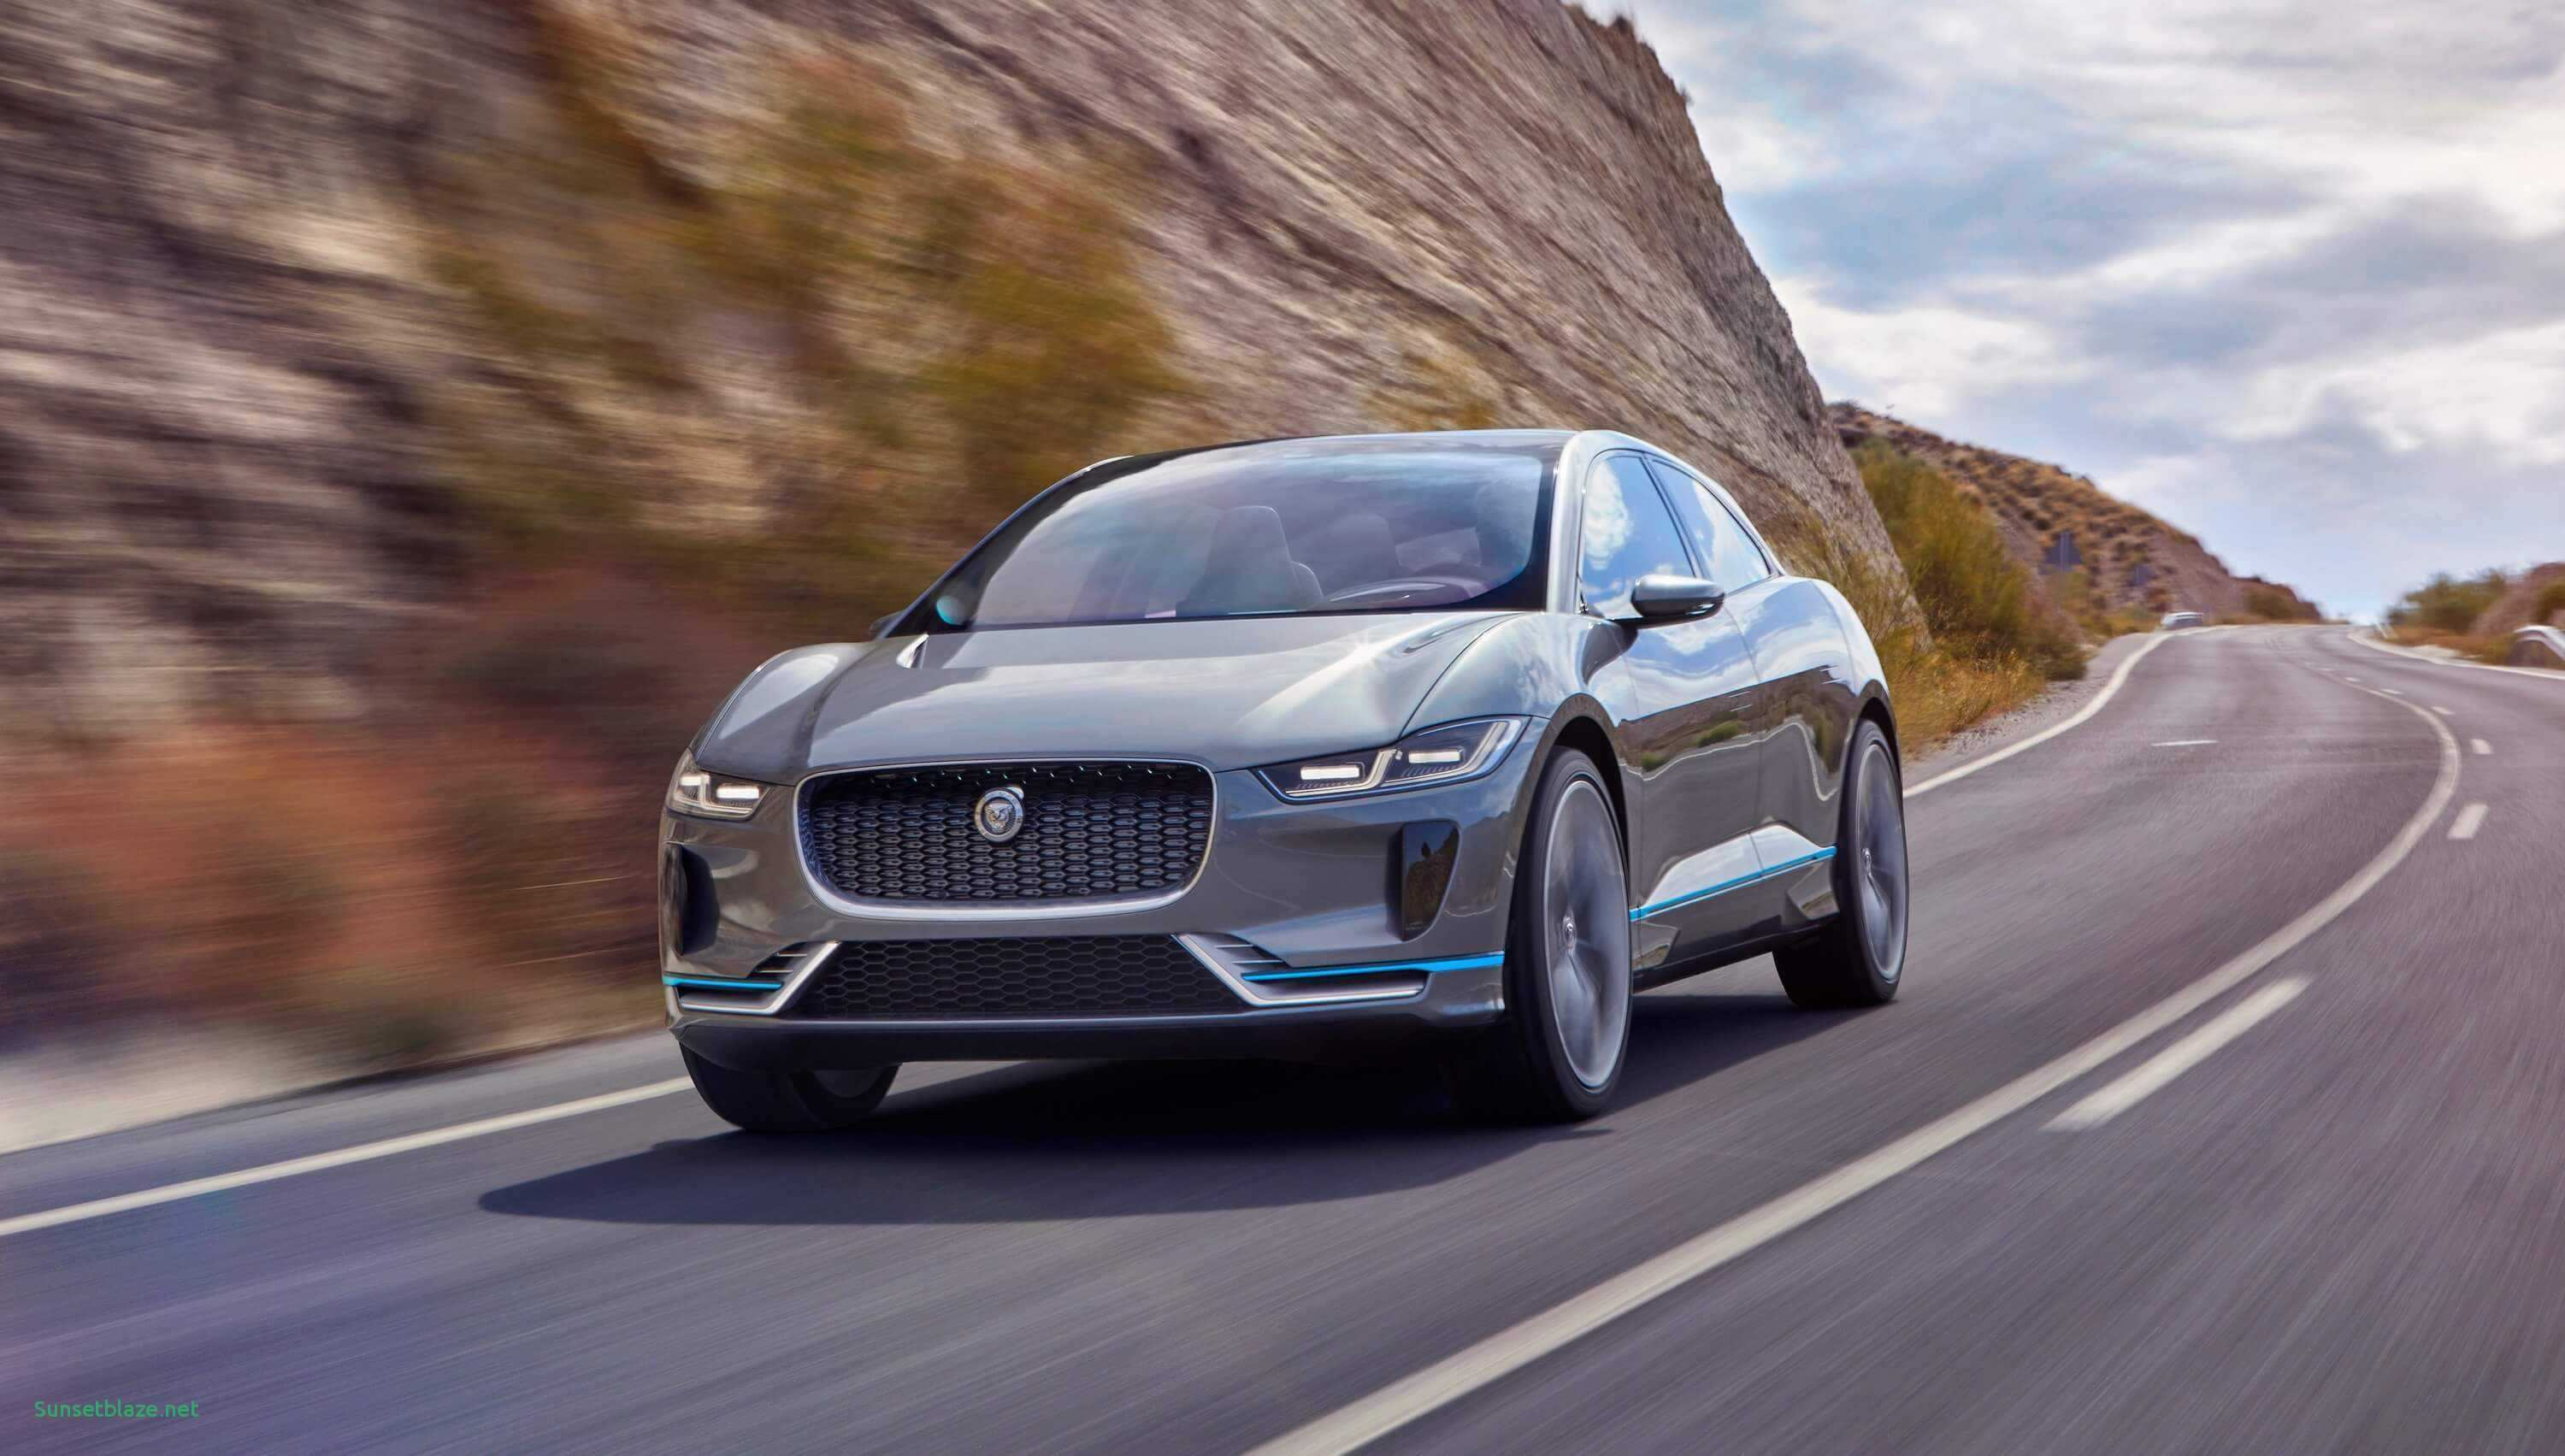 30 Concept of 2020 Jaguar XJ New Review with 2020 Jaguar XJ